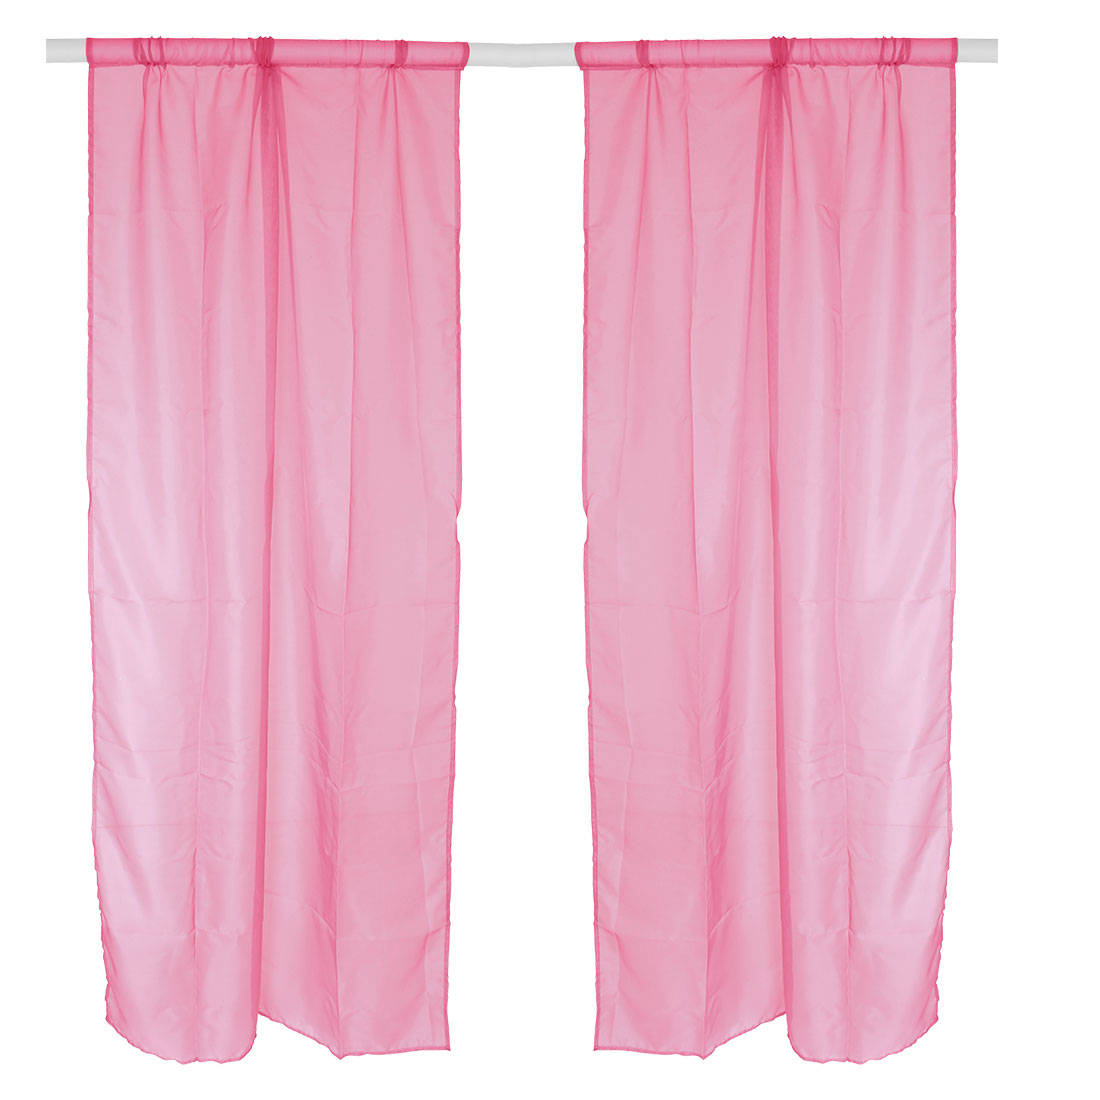 Bedroom Polyester Background Divider Panel Window Sheer Curtain Pink 100 x 200cm